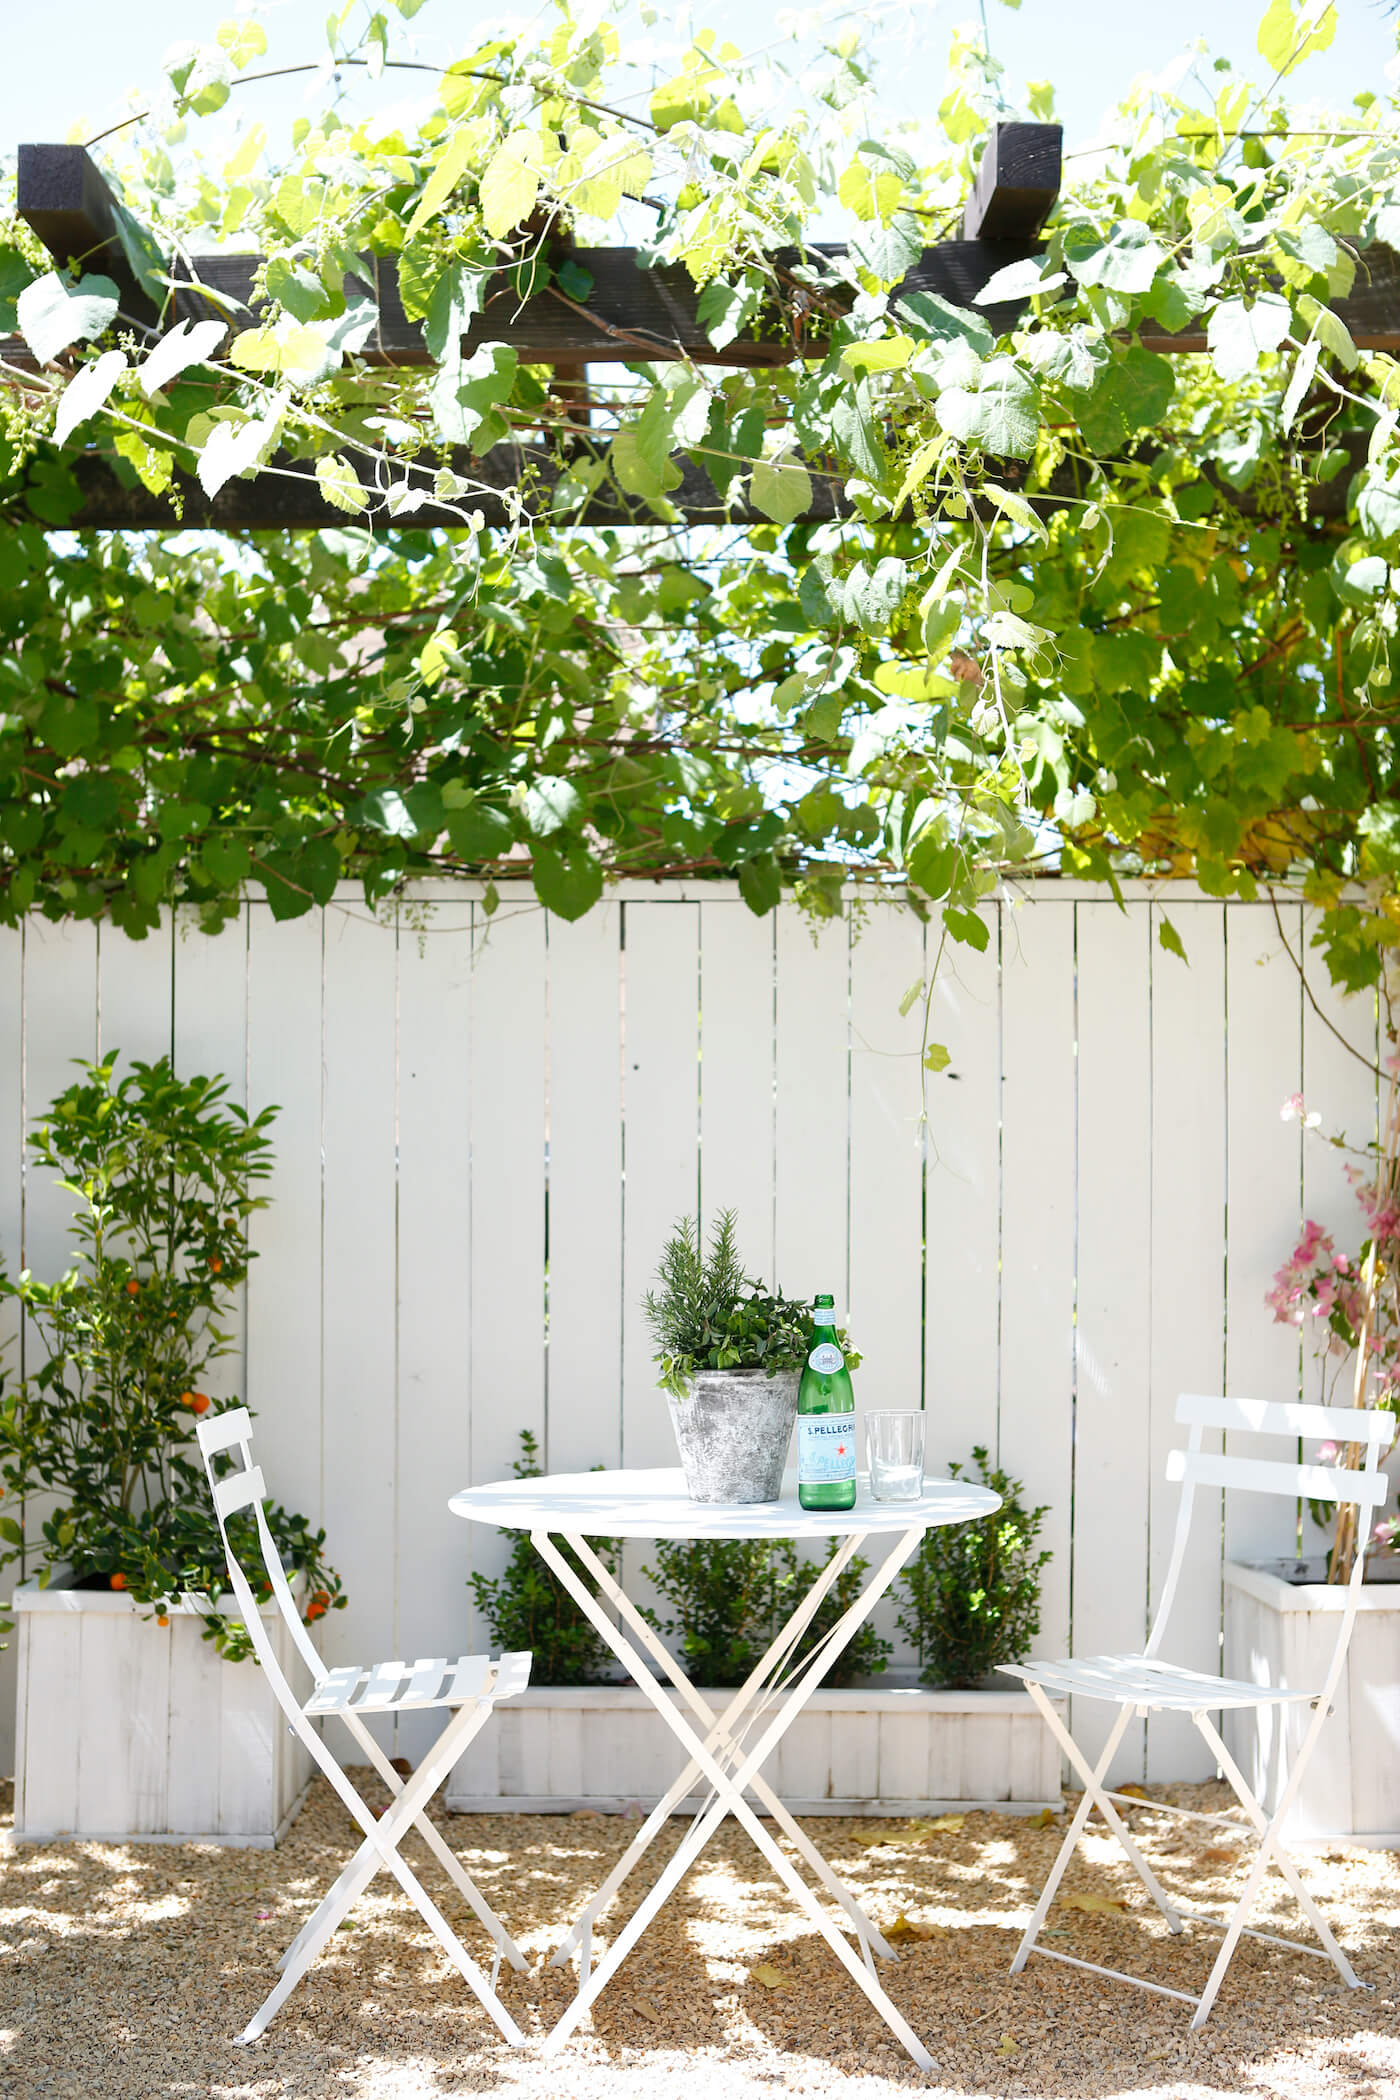 How To Grow Grapes in Your Backyard - American Farmhouse ...